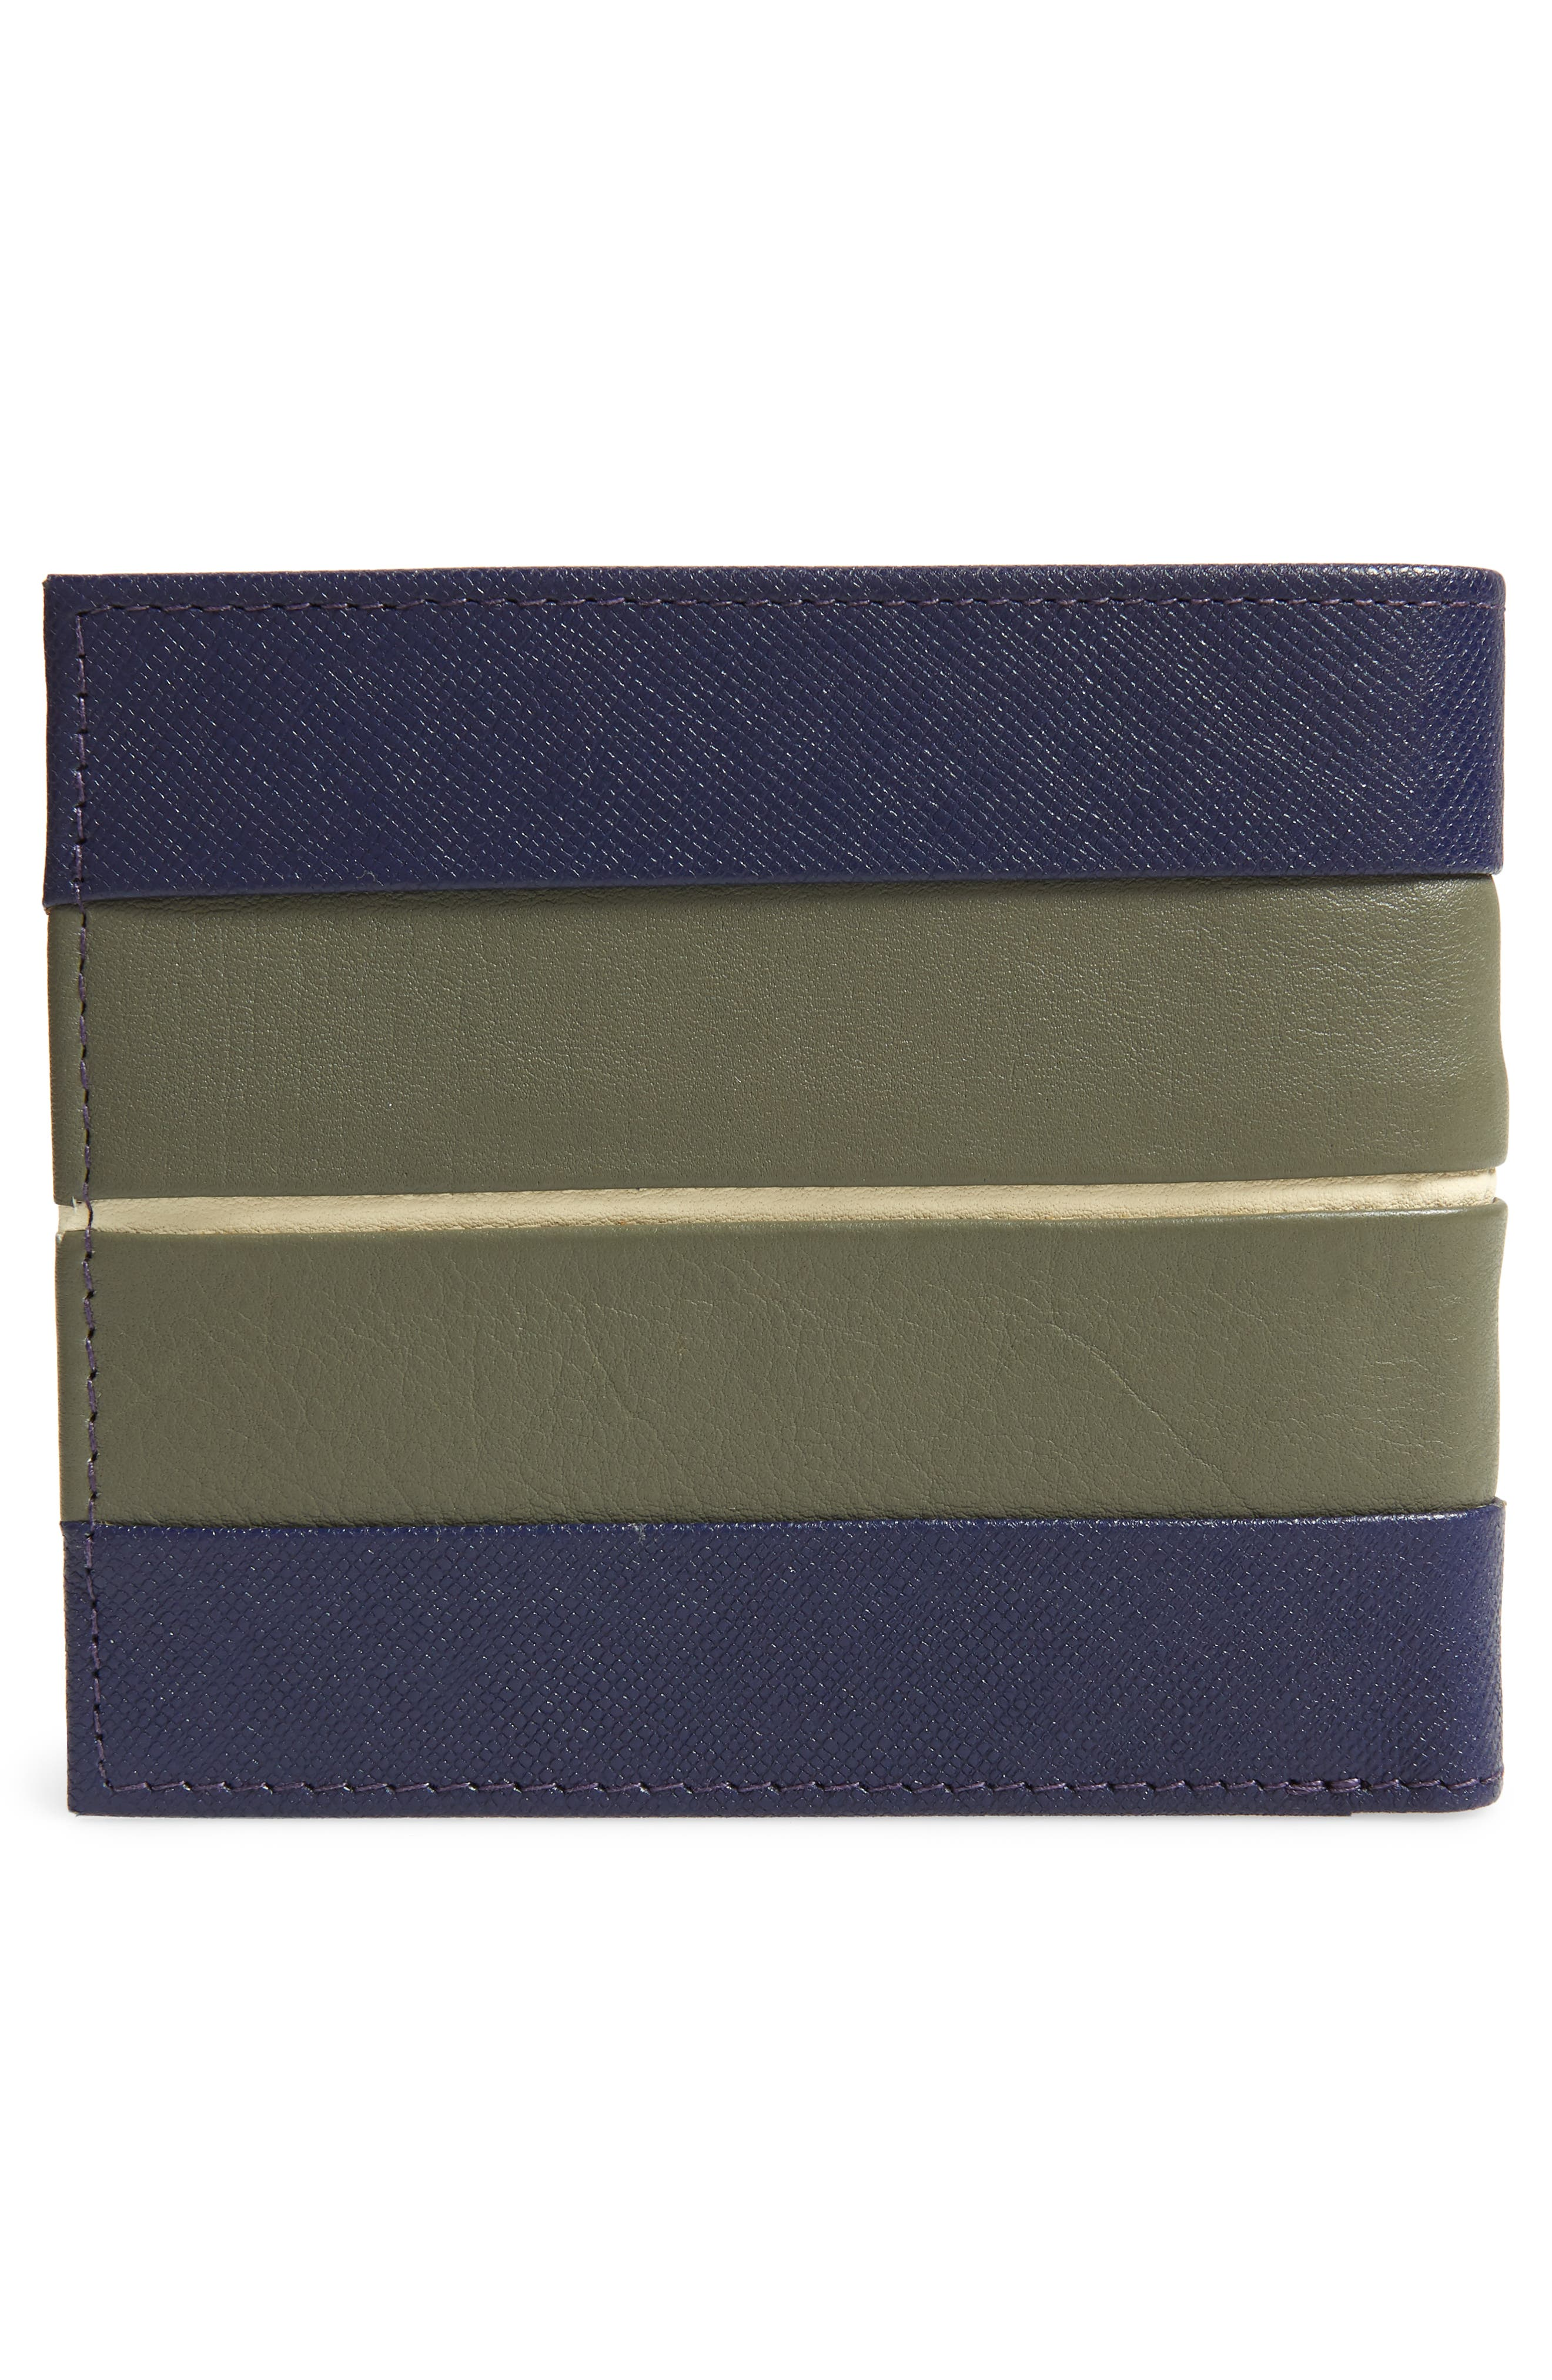 Striped Leather Bifold Wallet,                             Alternate thumbnail 3, color,                             410